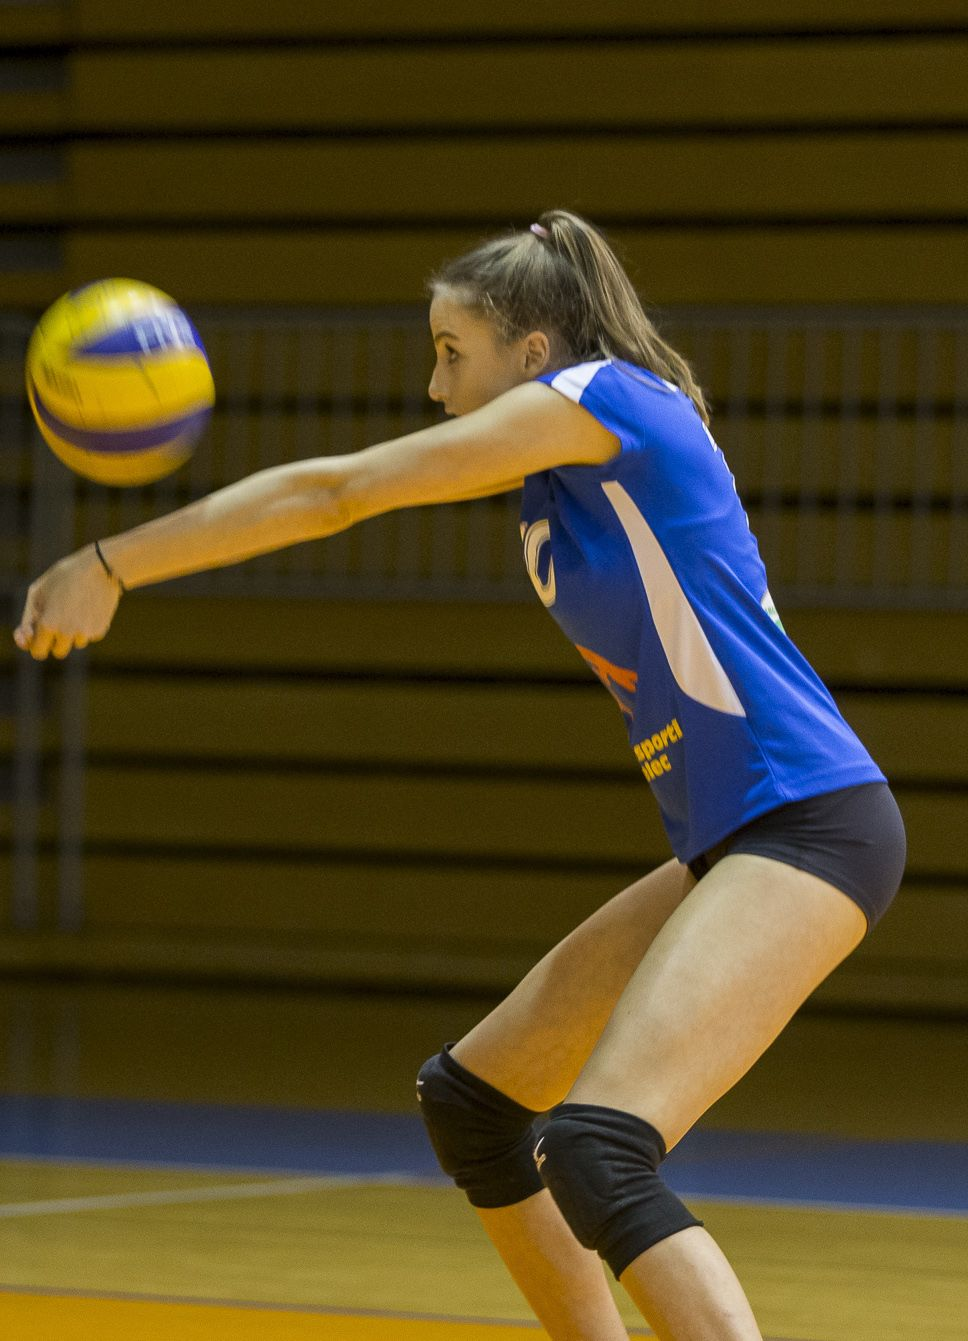 What To Know When Buying Volleyball Knee Pads Volleyball Knee Pads Volleyball Female Volleyball Players